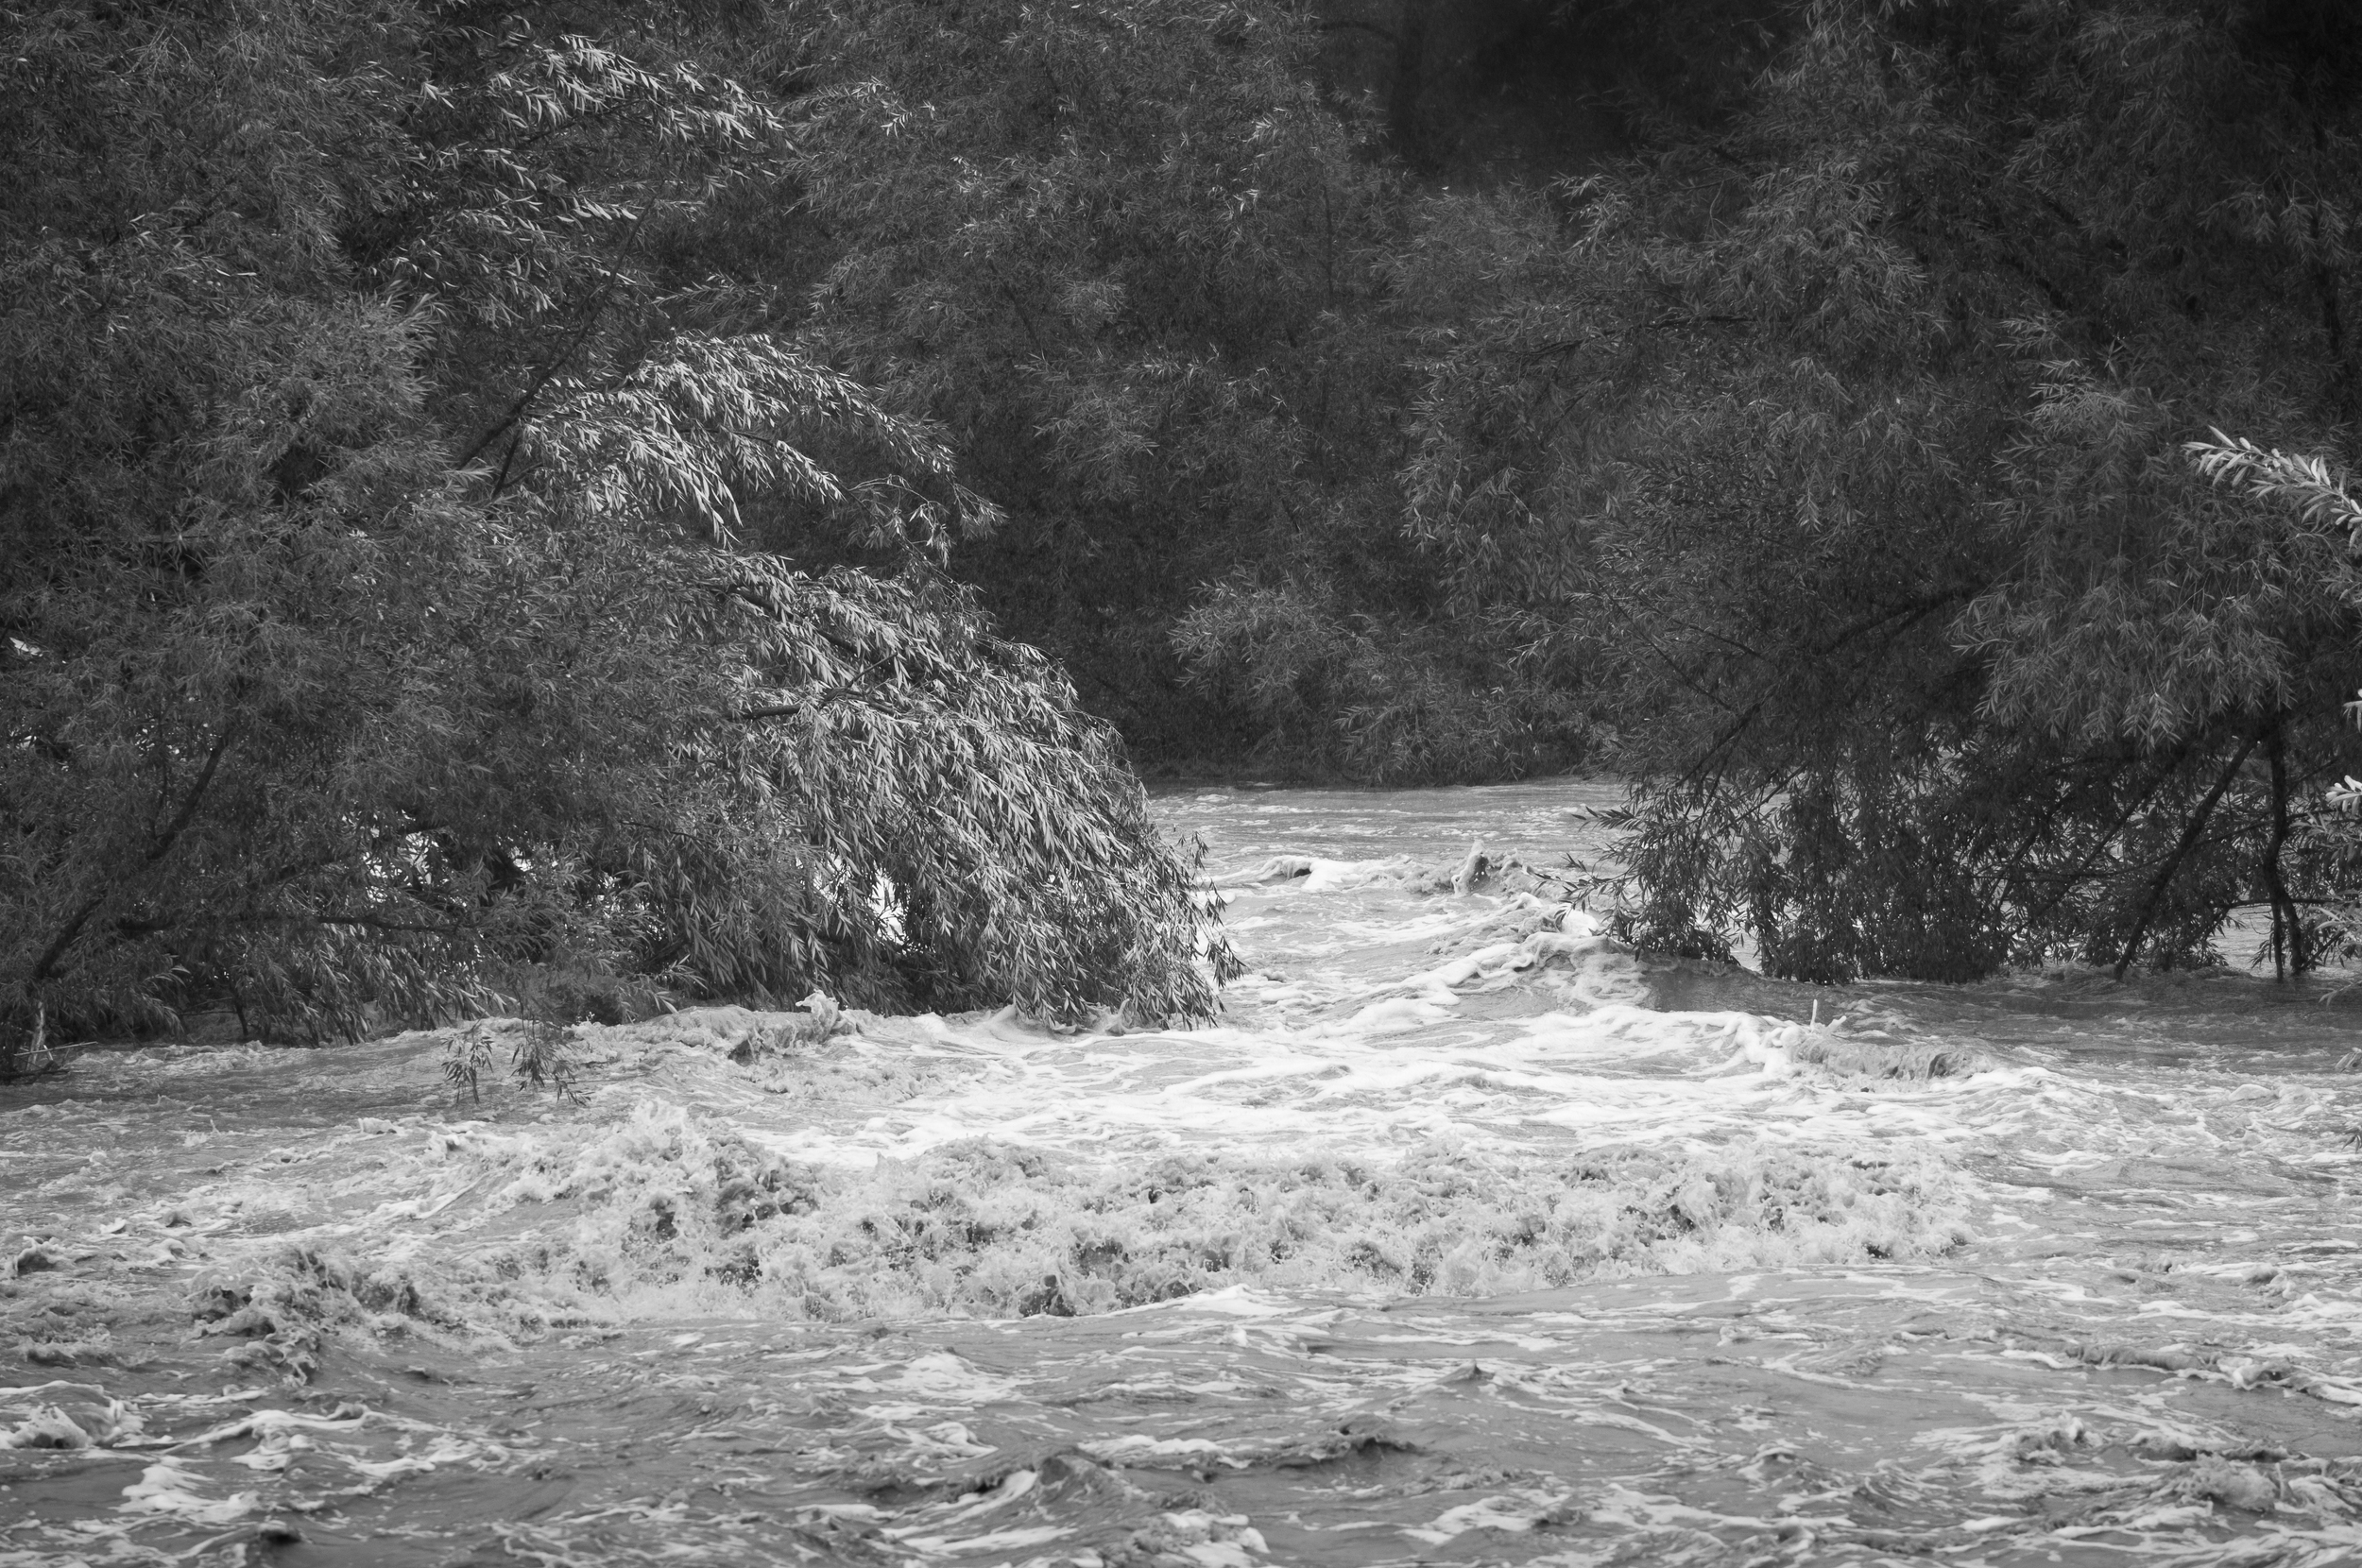 Boulder Creek flows below 75th at a tranquil rate of less than 200cfs on most days. During the flood it was clocked at over 5,000cfs. We figure the local trout are somewhere around Ft. Morgan by now.